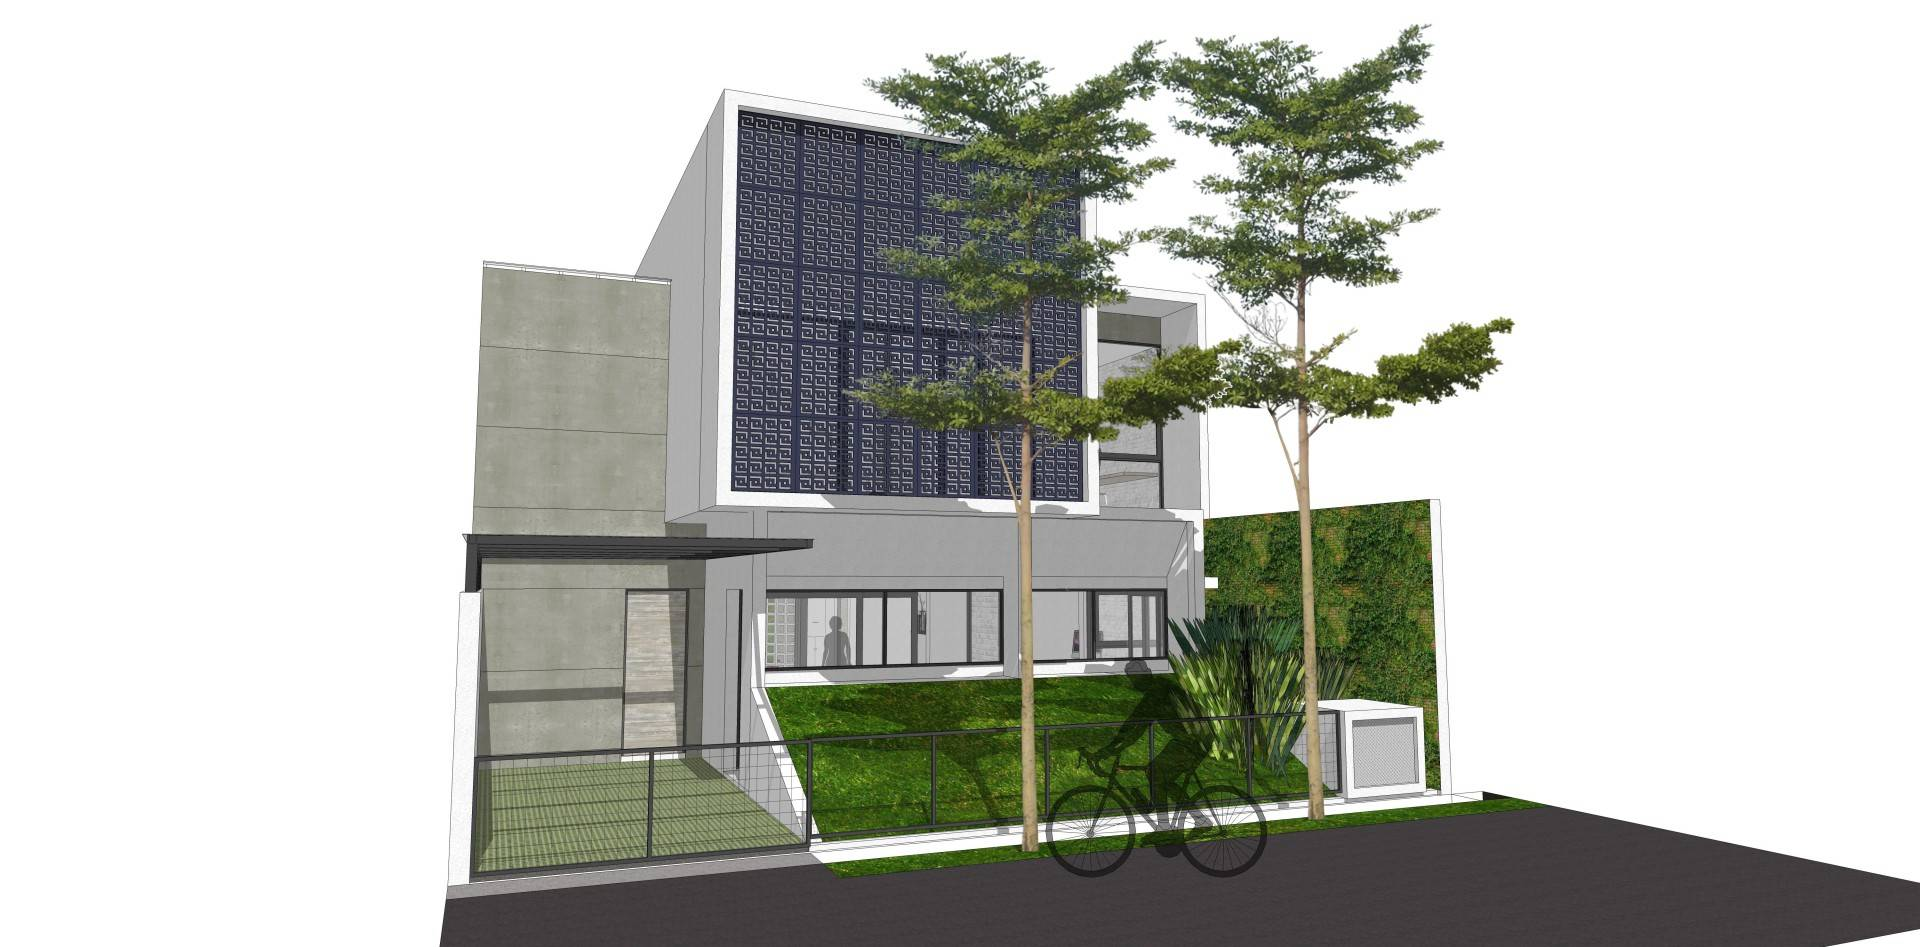 Dadan Adriansyah Rfs House Depok Depok Front View  Exterior Will Be Finished With Equitone Facade Material, And The Screen-Panel Is Painted Lasercut-Grc. 4862